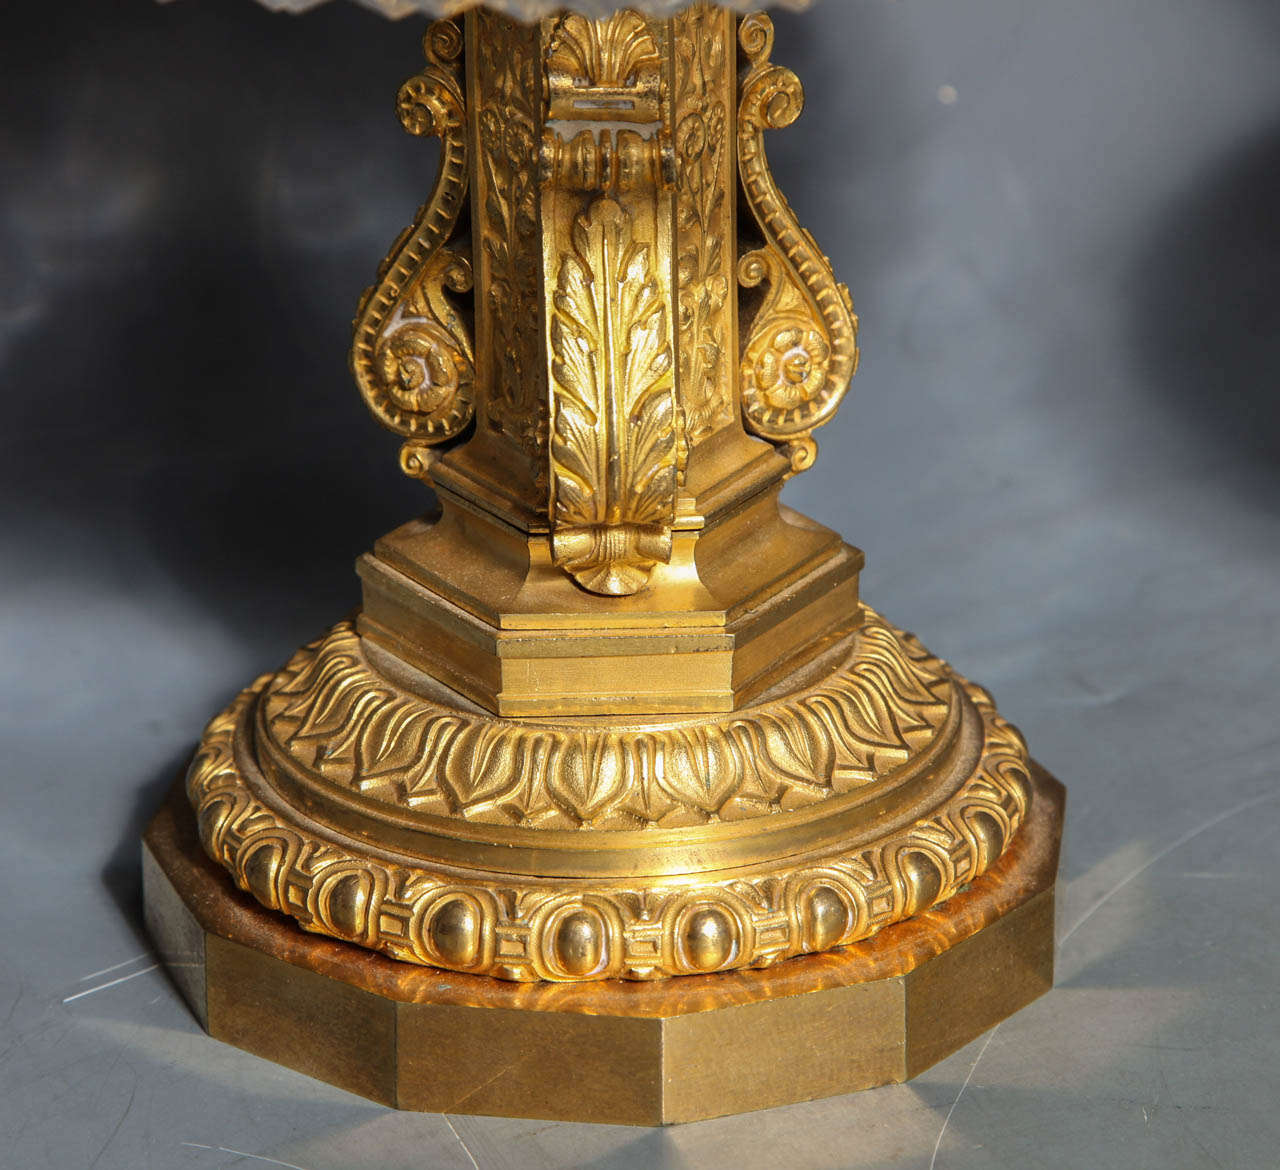 19th Century Pair of Antique French Two Tiered Tazzas or Centerpieces by P. Philippe Thomier For Sale